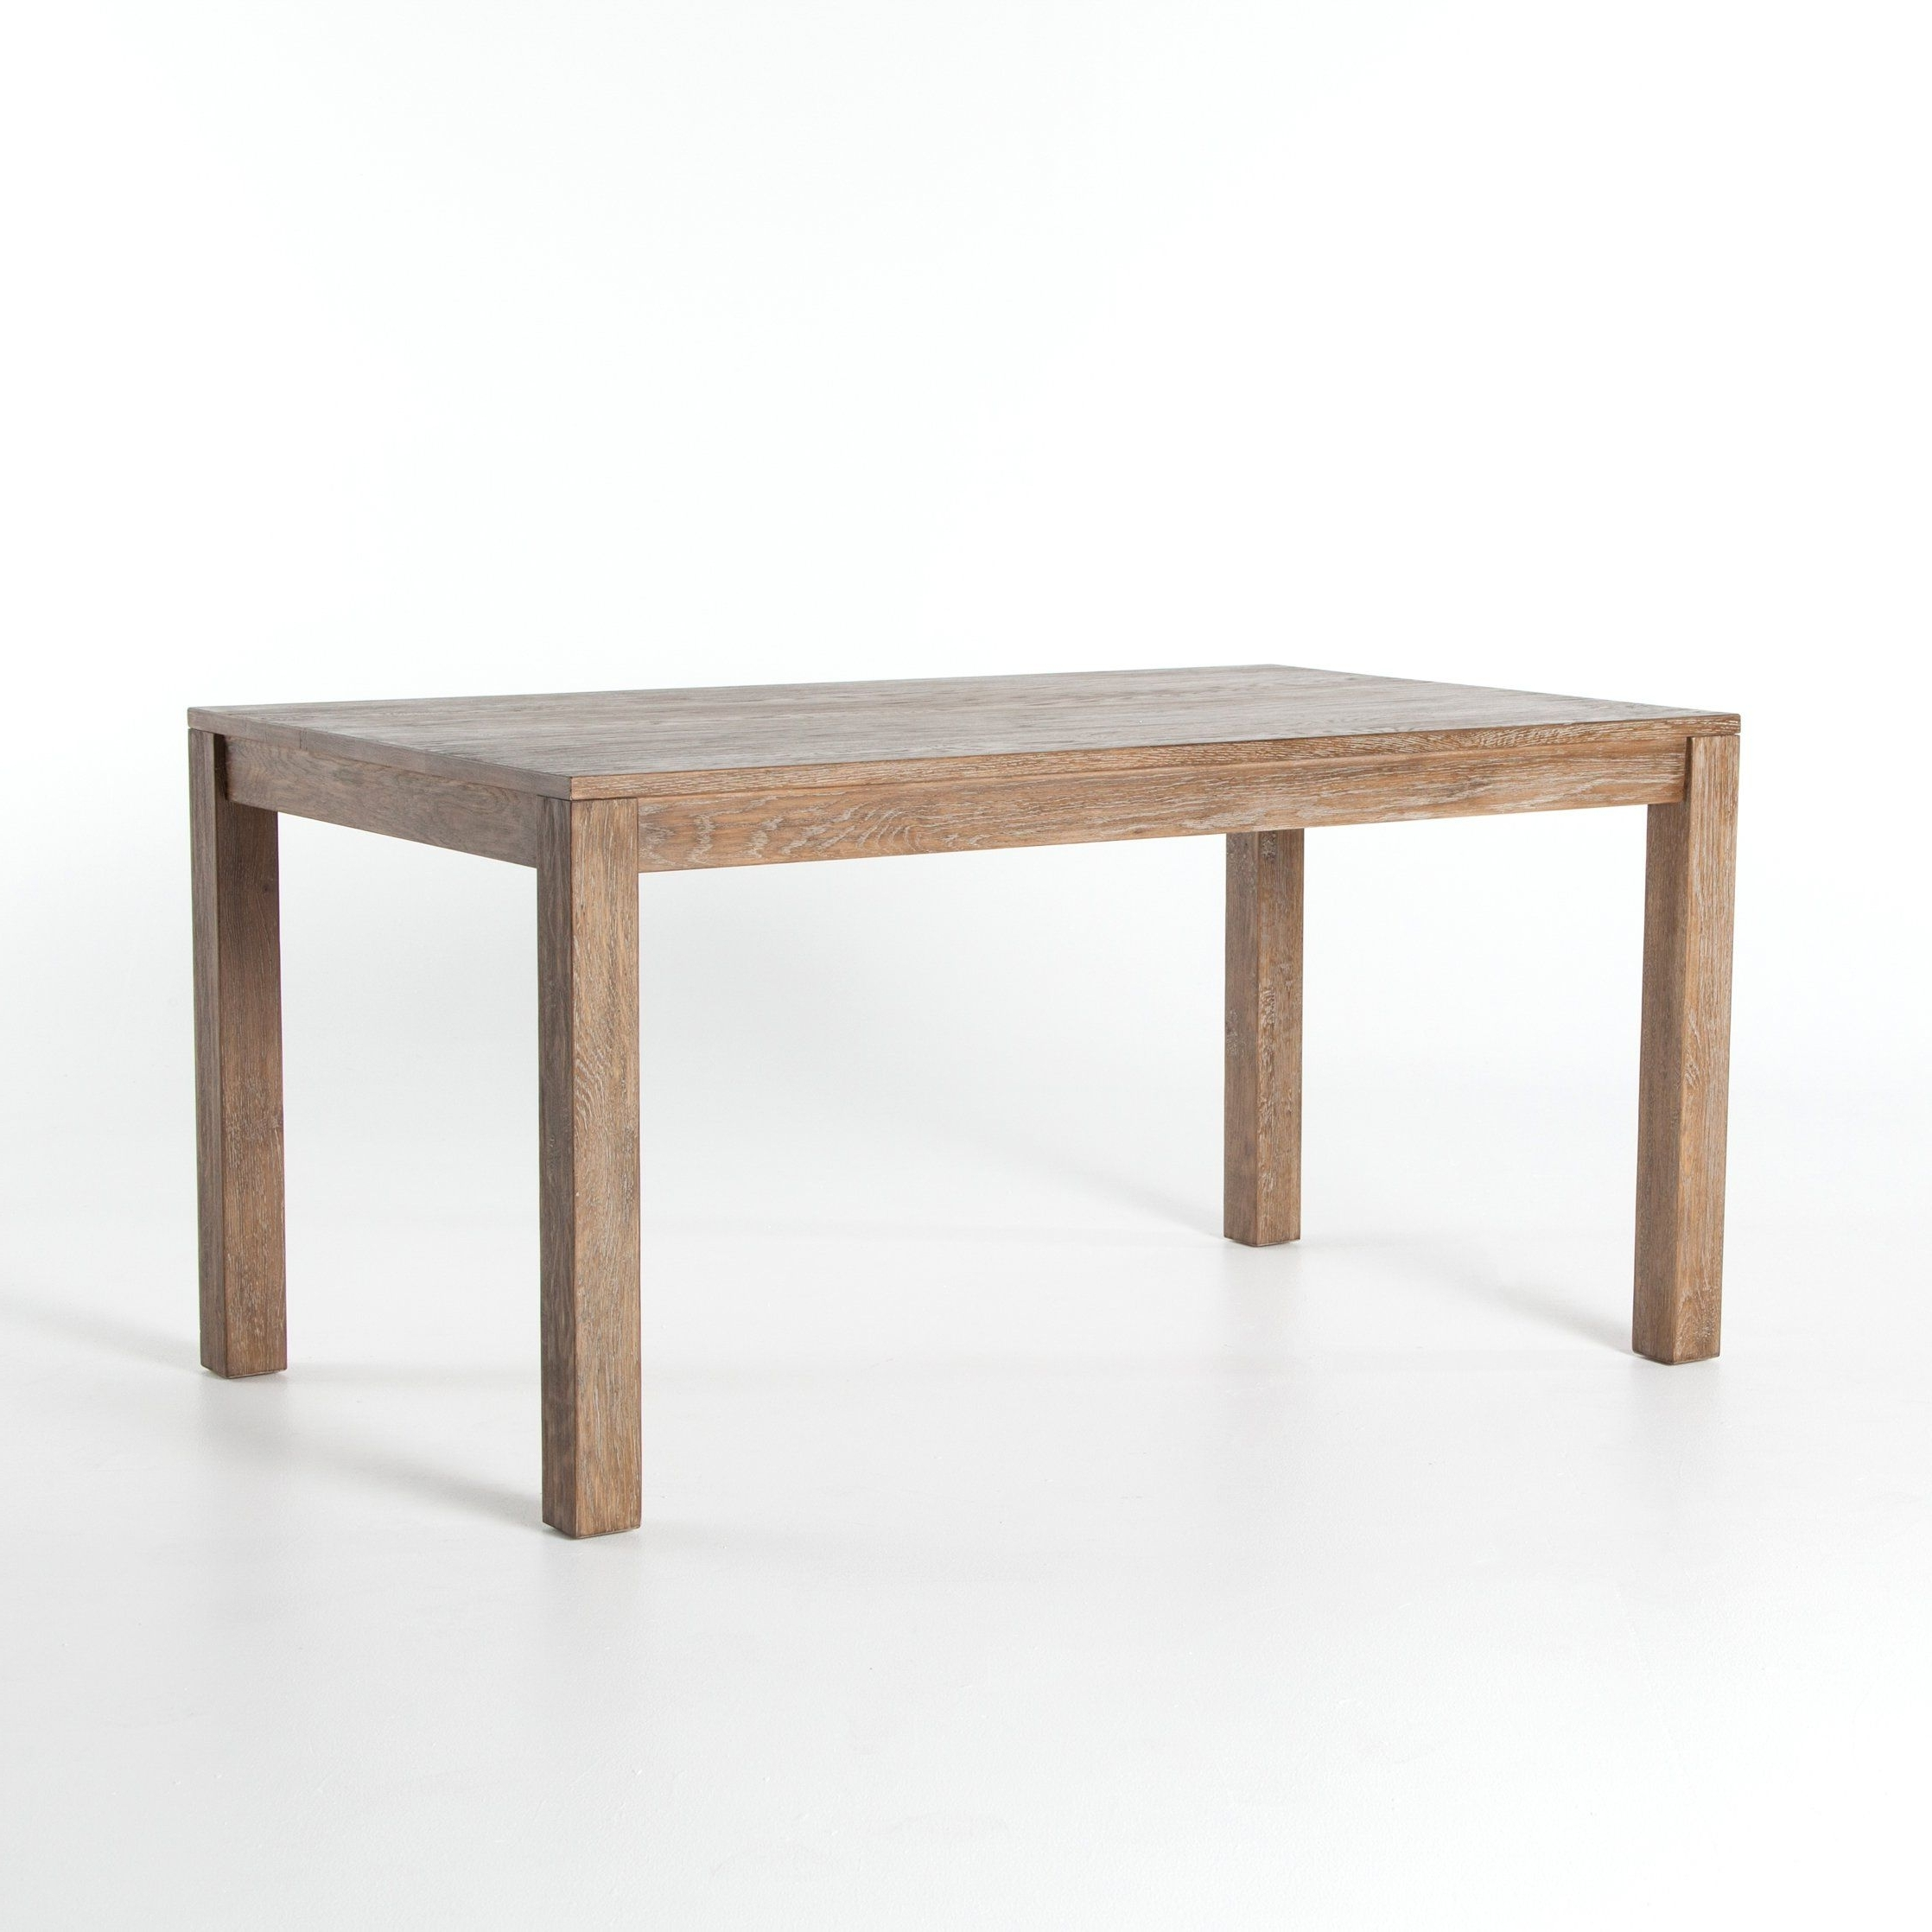 Caden Rectangle Dining Tables Intended For Well Known Caden Dining Table: Light Burnt Oak (View 5 of 25)